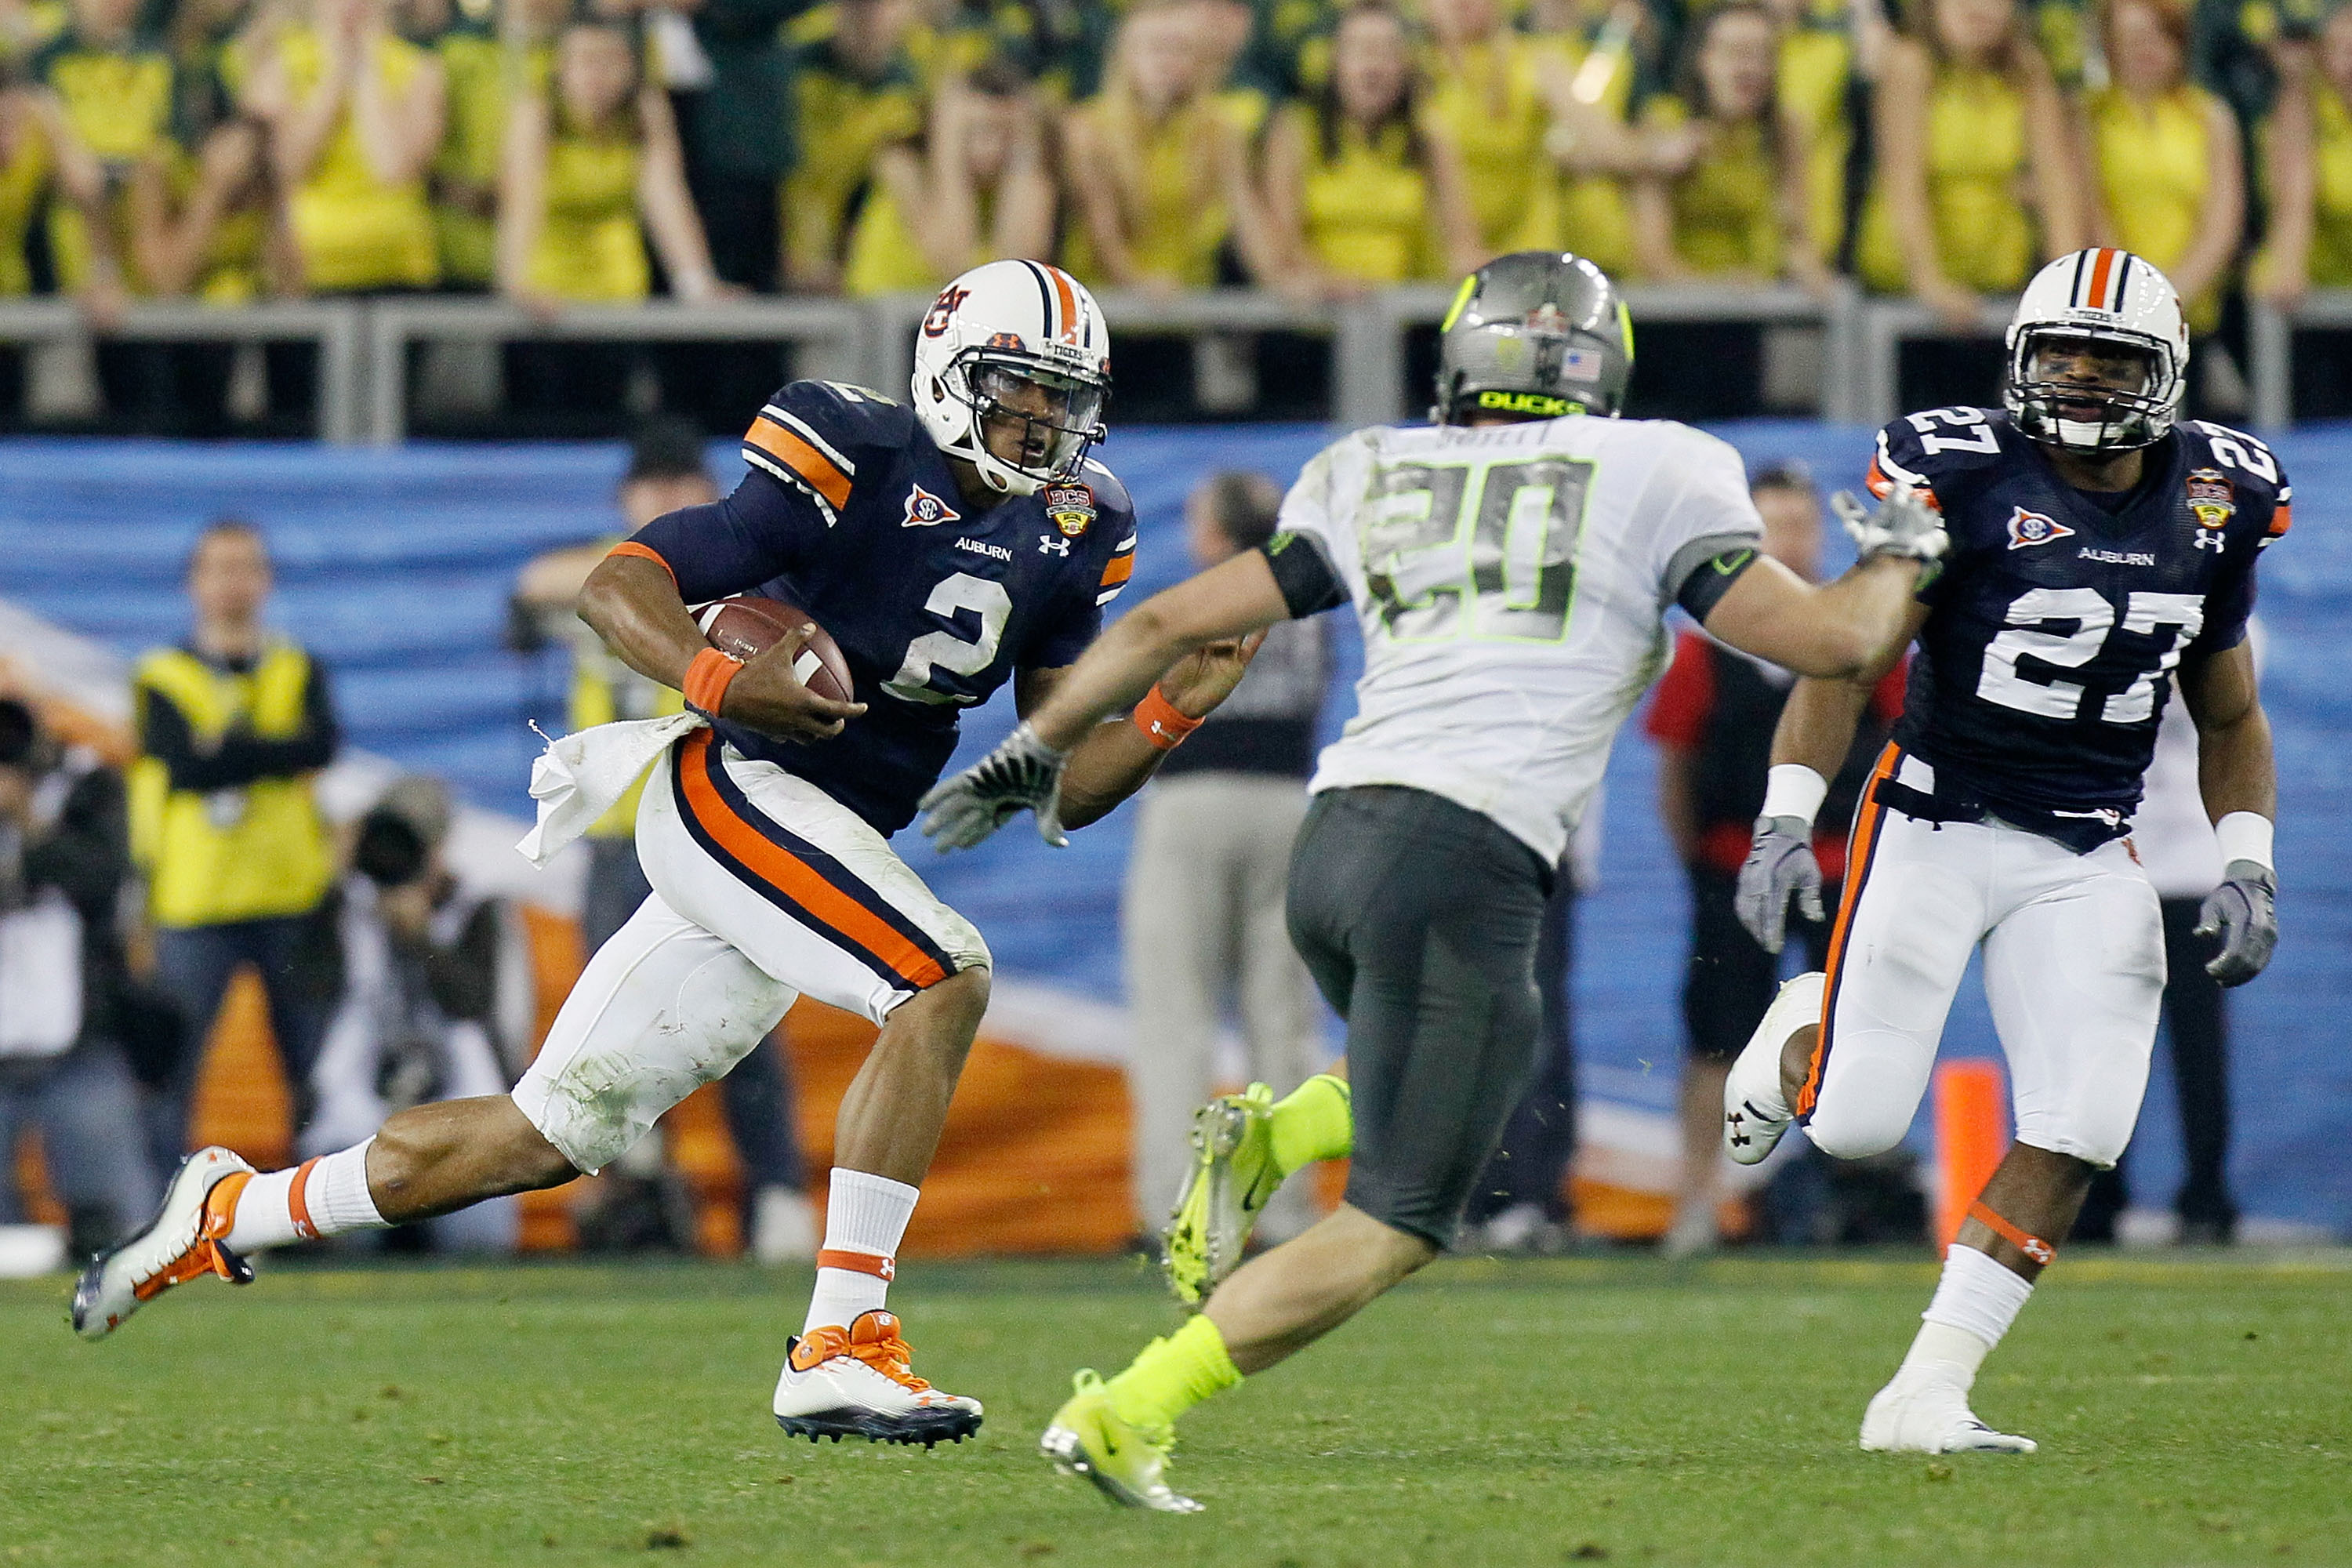 GLENDALE, AZ - JANUARY 10:  Cameron Newton #2 of the Auburn Tigers runs down field against John Boyett #20 of the Oregon Ducks during the Tostitos BCS National Championship Game at University of Phoenix Stadium on January 10, 2011 in Glendale, Arizona.  (